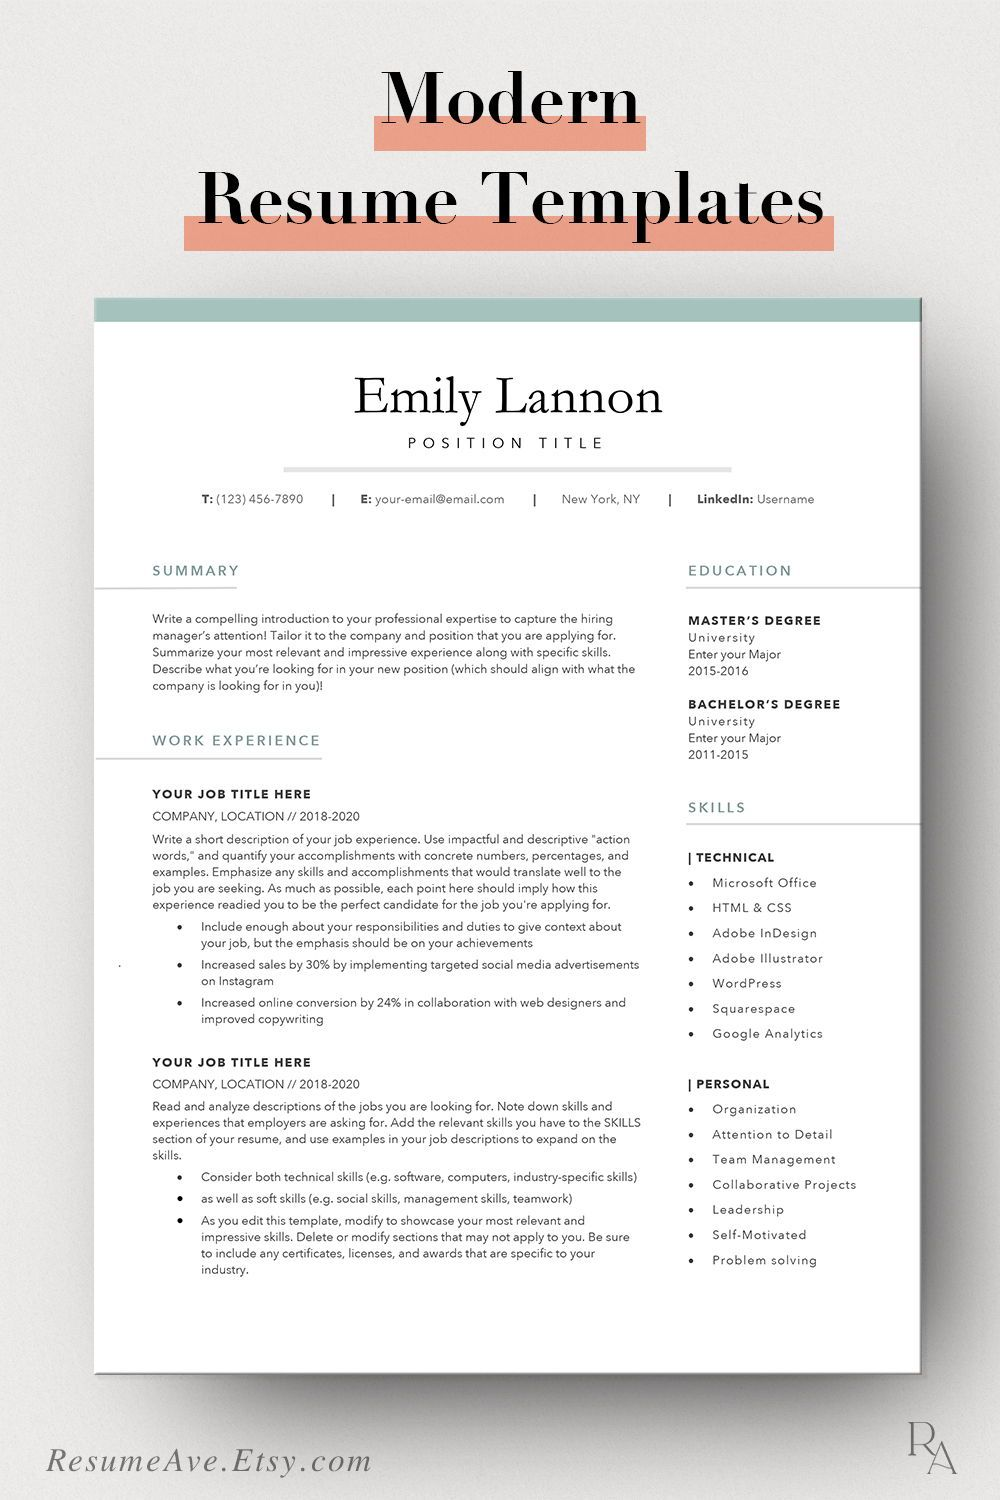 Feminine resume template Word with green border simple